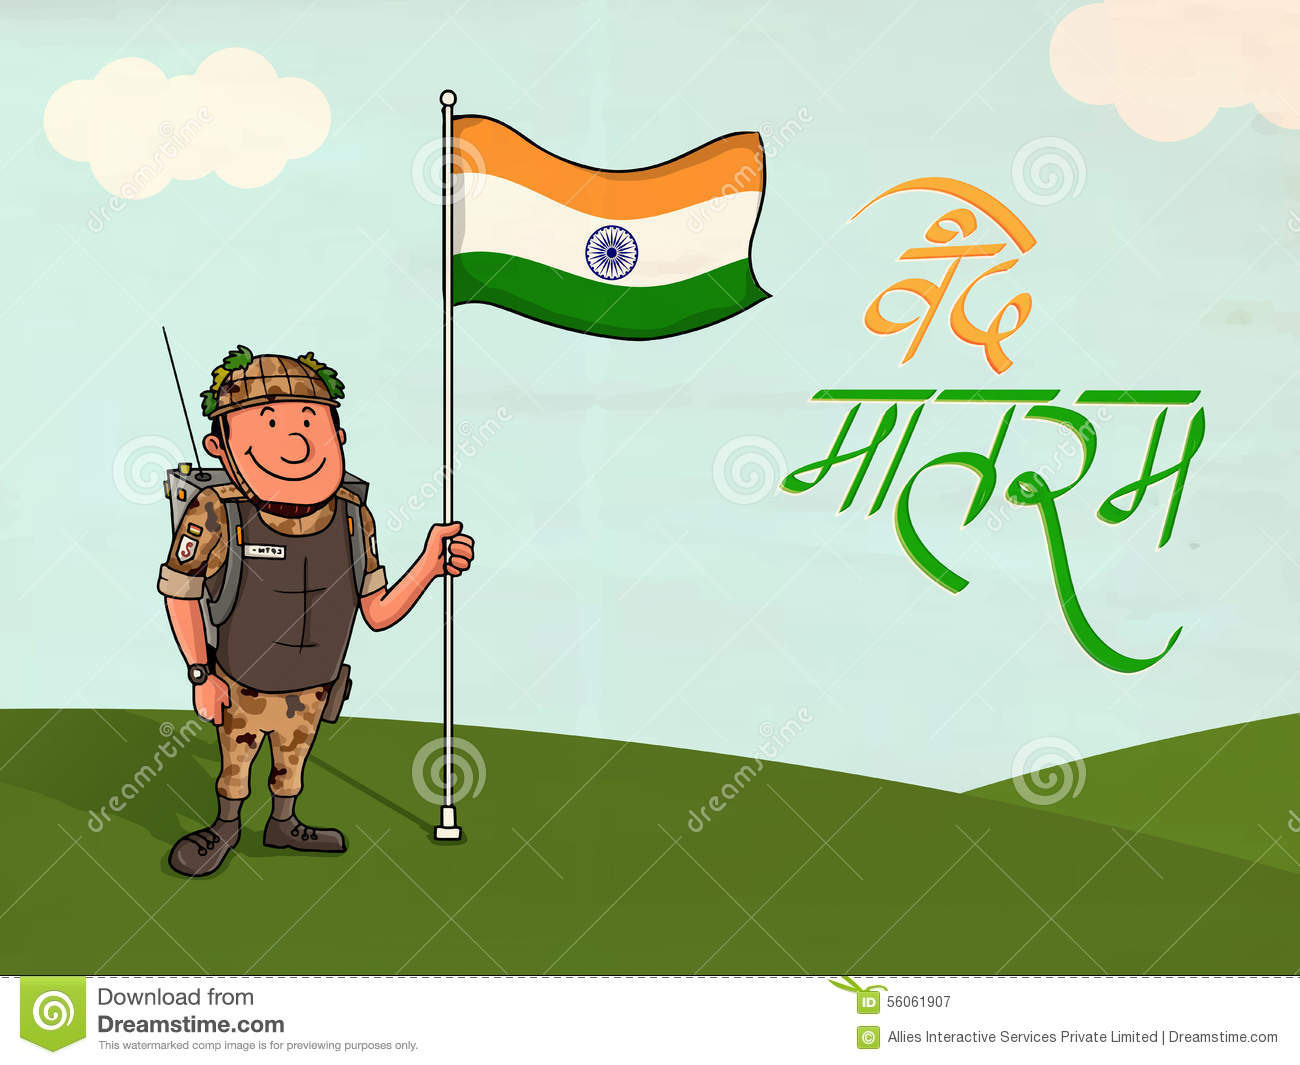 national flag in hindi 45th us president donald trump american donald trump donald trump twitter national flag us president  get all latest america news in hindi from politics, crime.